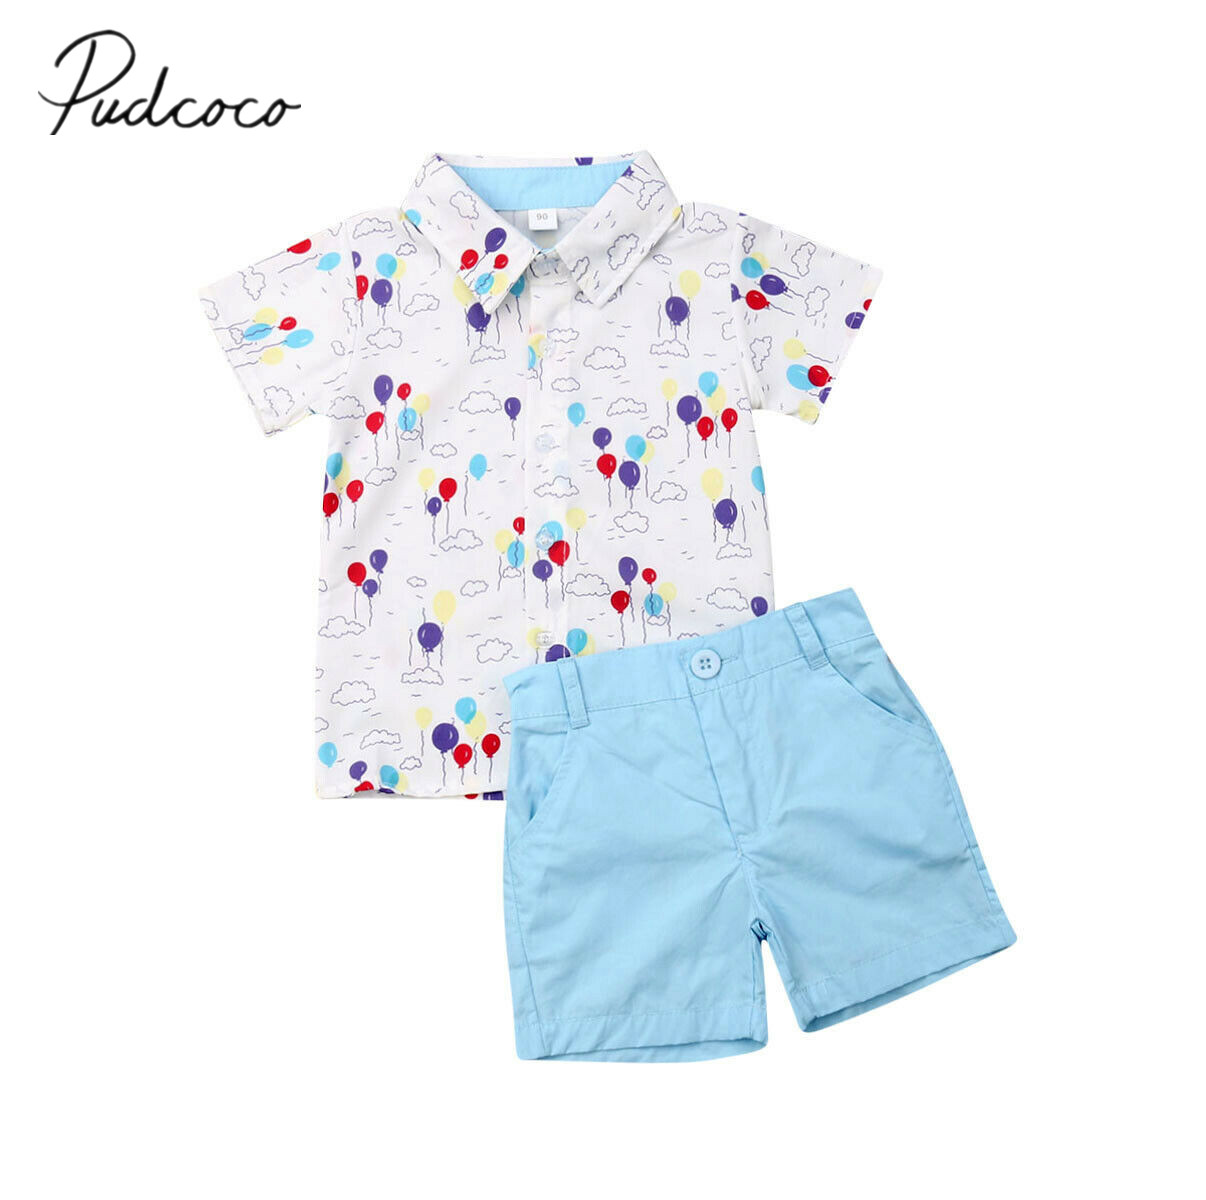 Toddler Kids Baby Boy Clothes Giraffe Print Tops Shorts 2Pcs Outfit Sunsuit 1-6Y